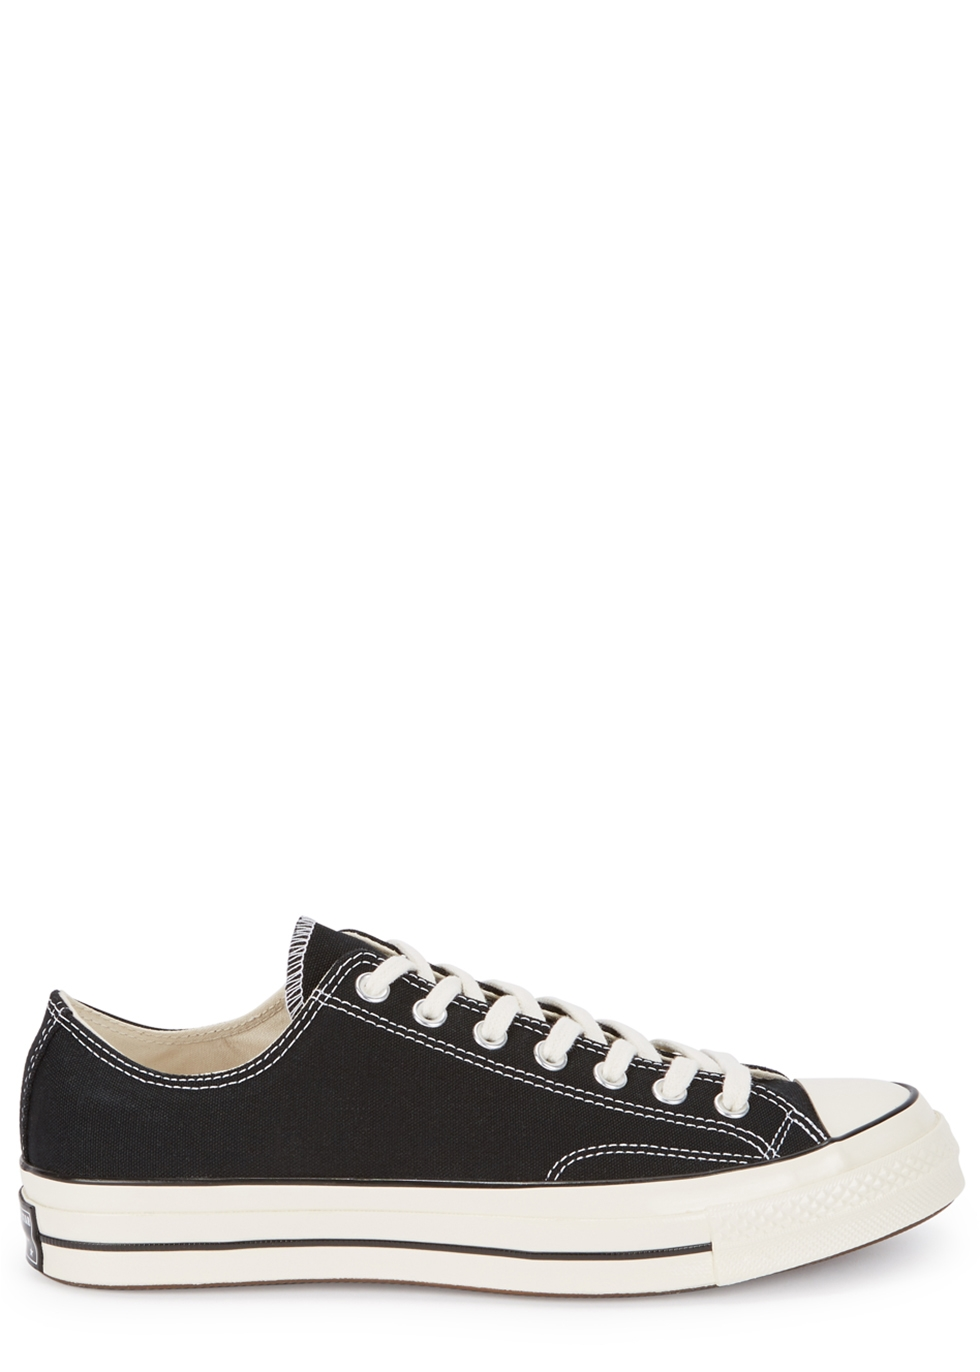 Chuck 70 black canvas sneakers